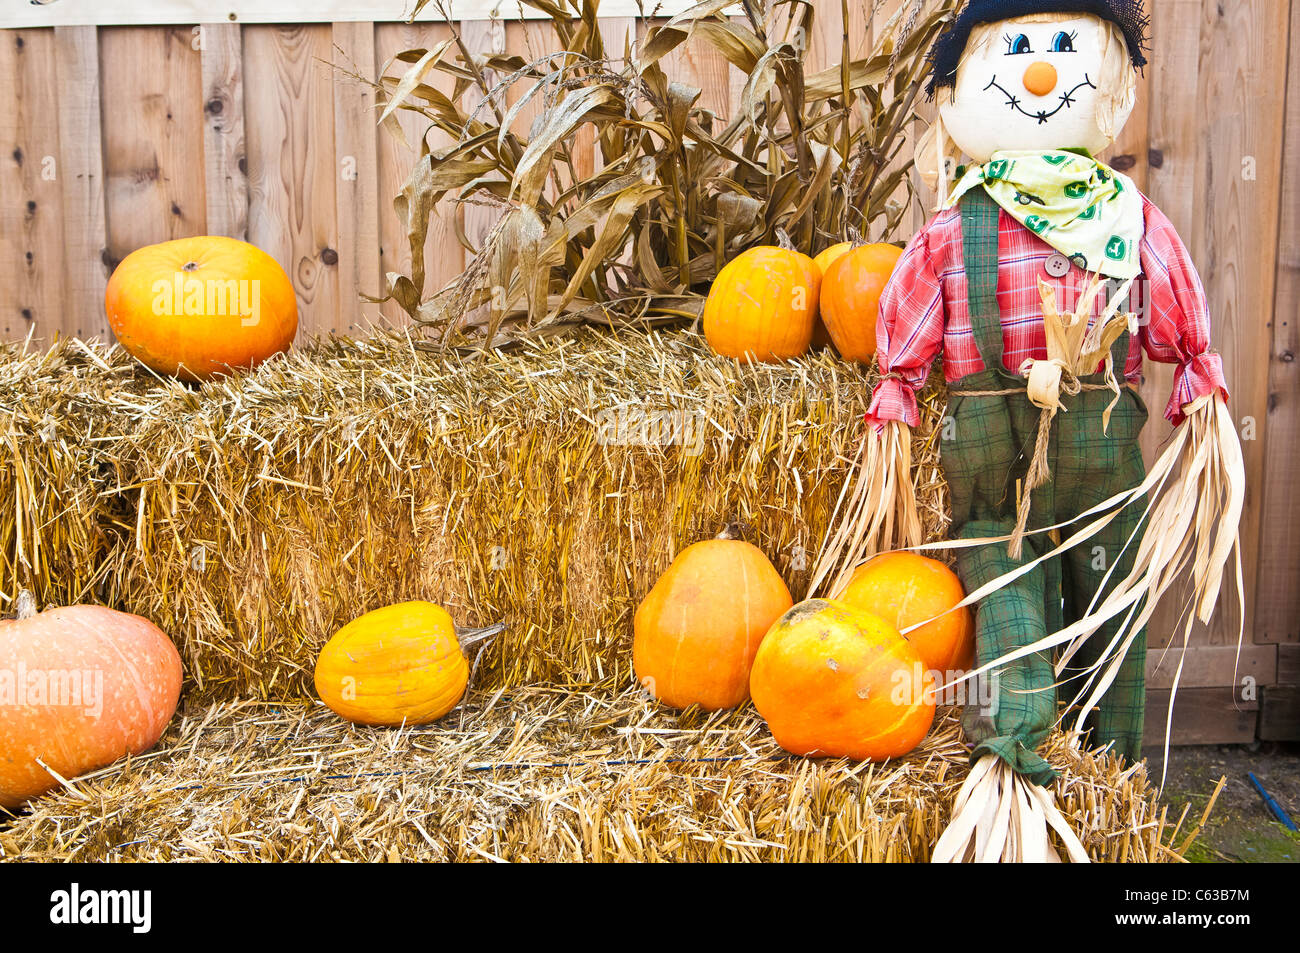 stock photo halloween scarecrow and pumpkins on straw with corn stalks - Halloween Corn Stalks